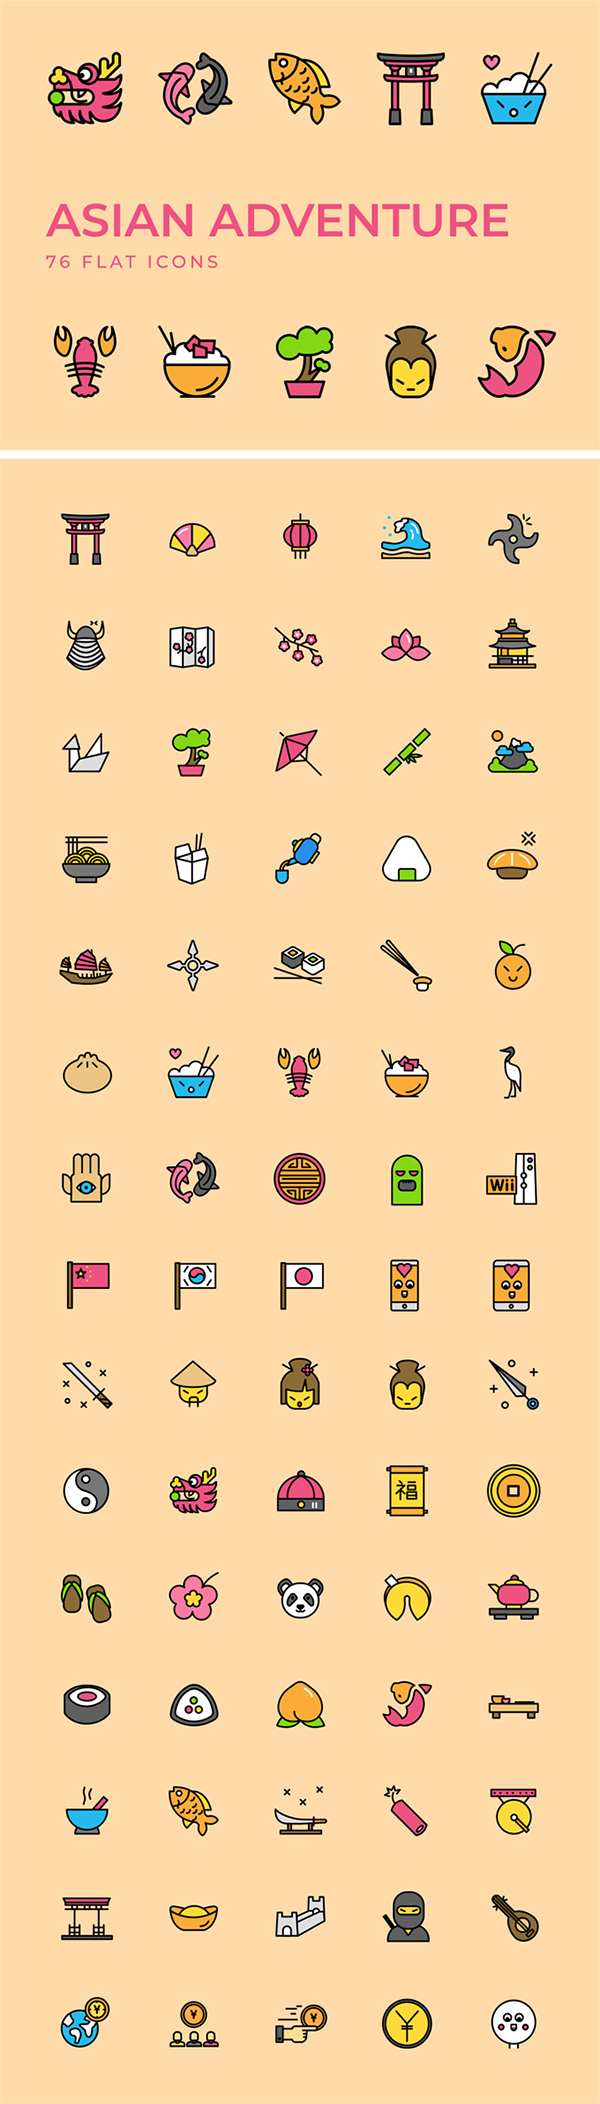 Asian Adventure Flat Icons Kit